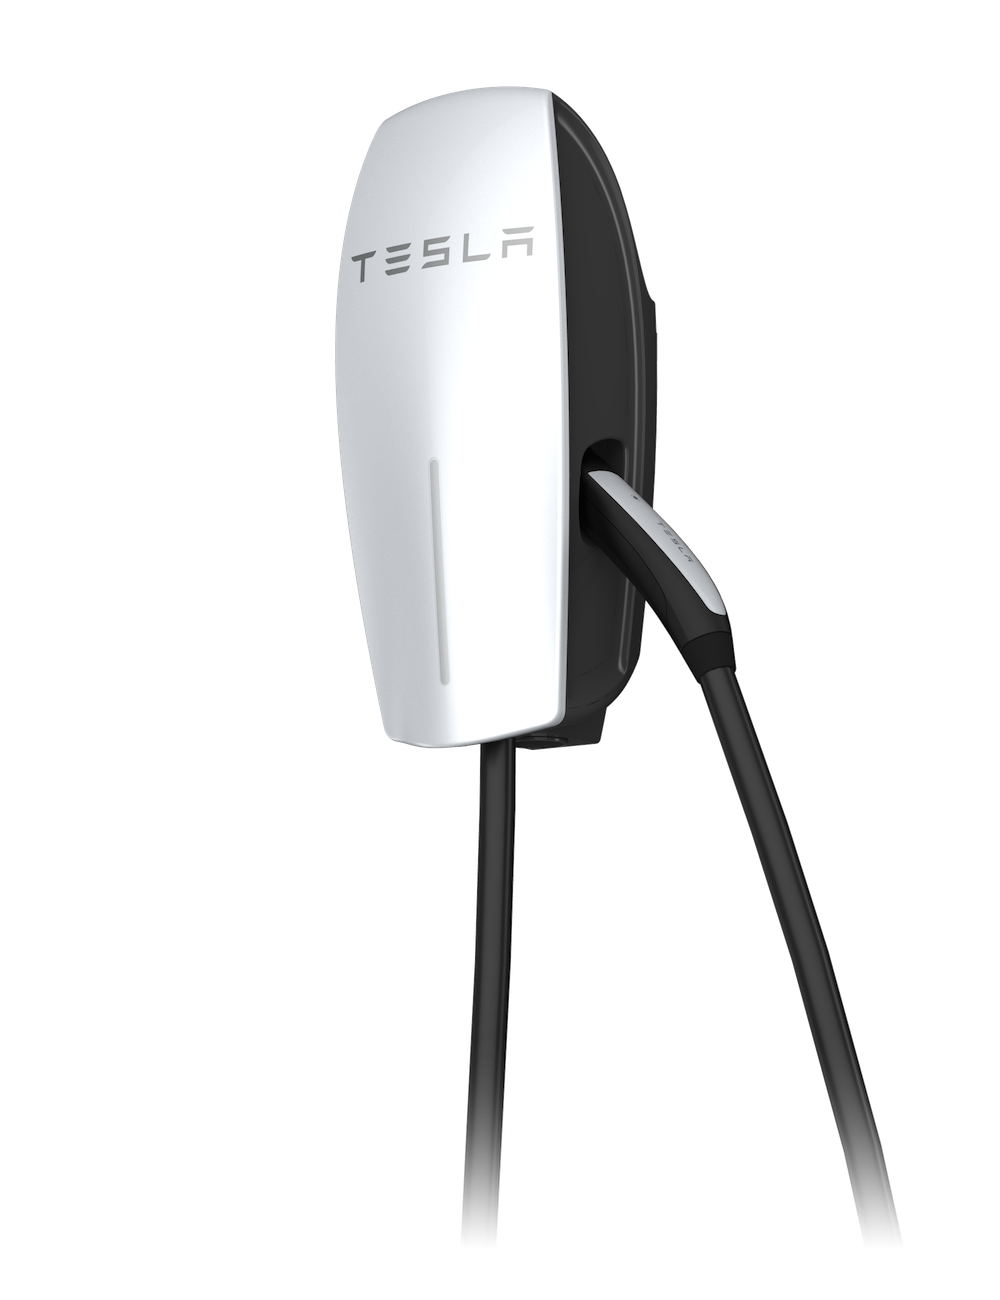 Wall Connector - Tesla recommends the Wall Connector as the most dynamic home charging hardware for Model S, Model X and Model 3. Customizable to almost any power supply, the Wall Connector will provide faster charging speeds and the most convenience for home charging.Learn more about the Wall Connector.